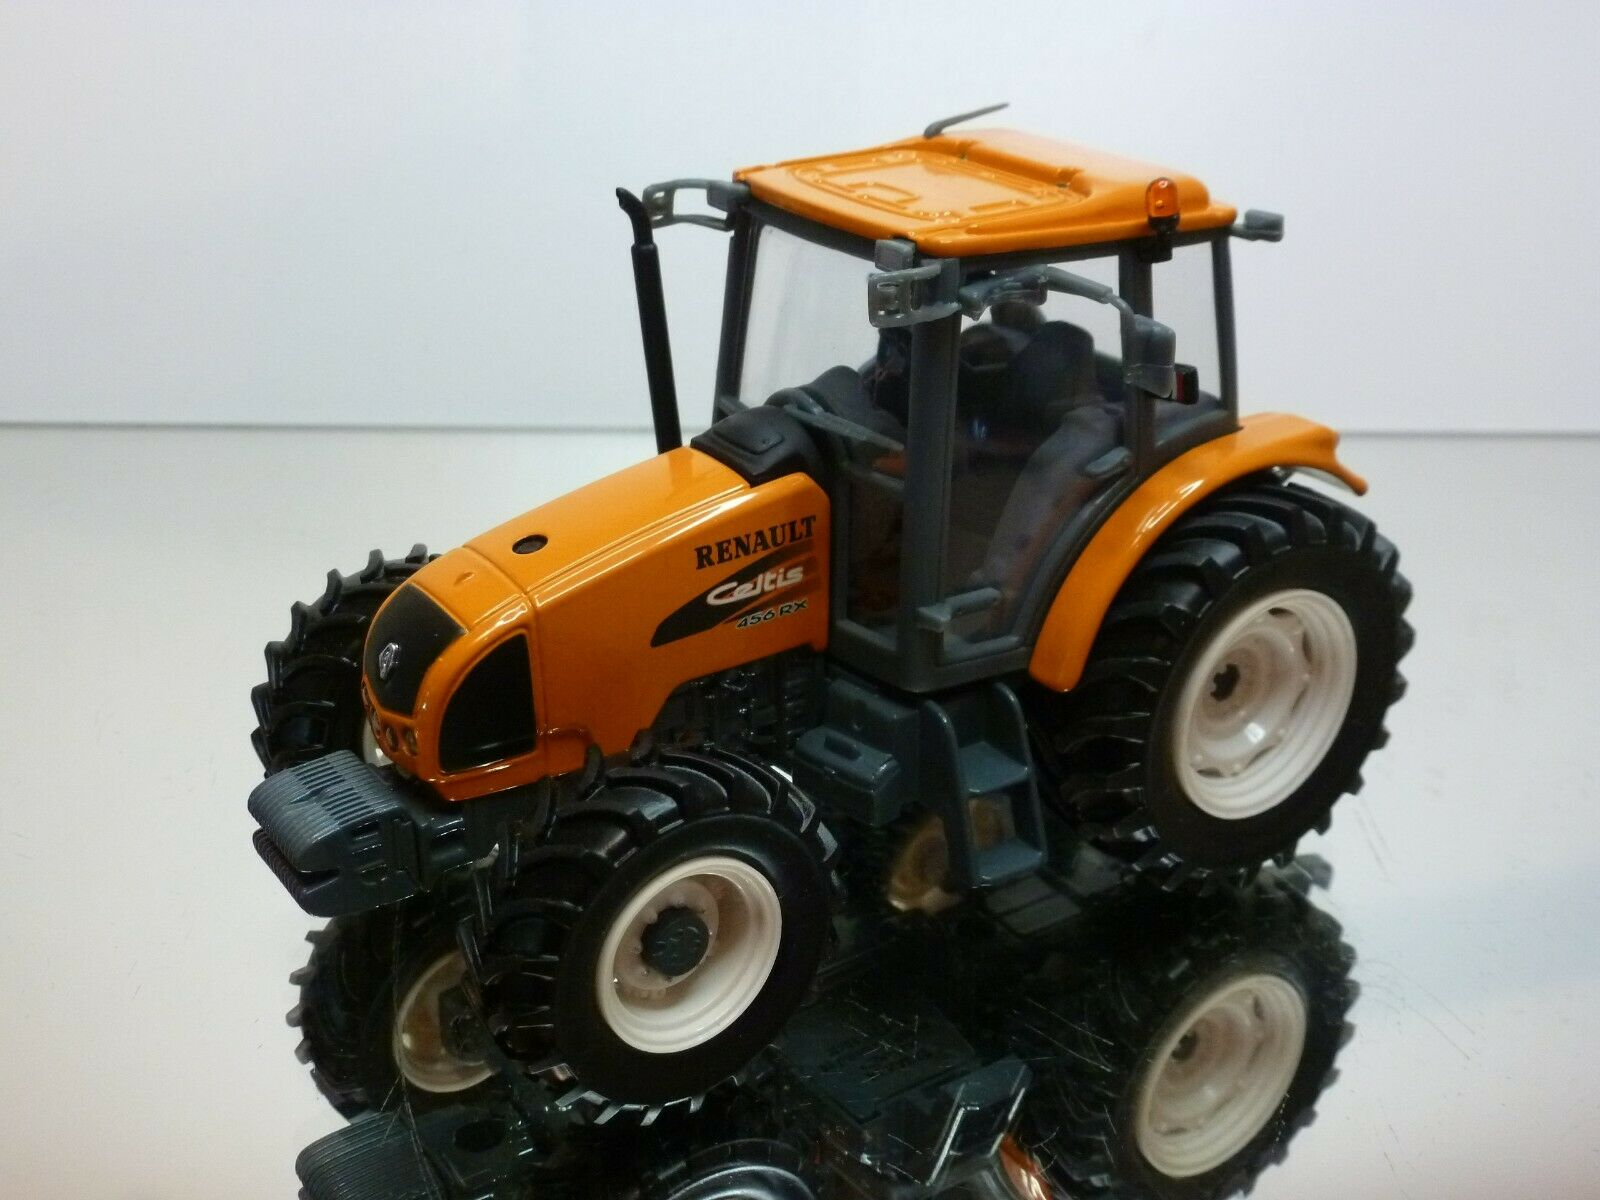 UNIVERSAL HOBBIES RENAULT CELTIS 456RX TRACTOR - ORANGE 1:32 - VERY GOOD